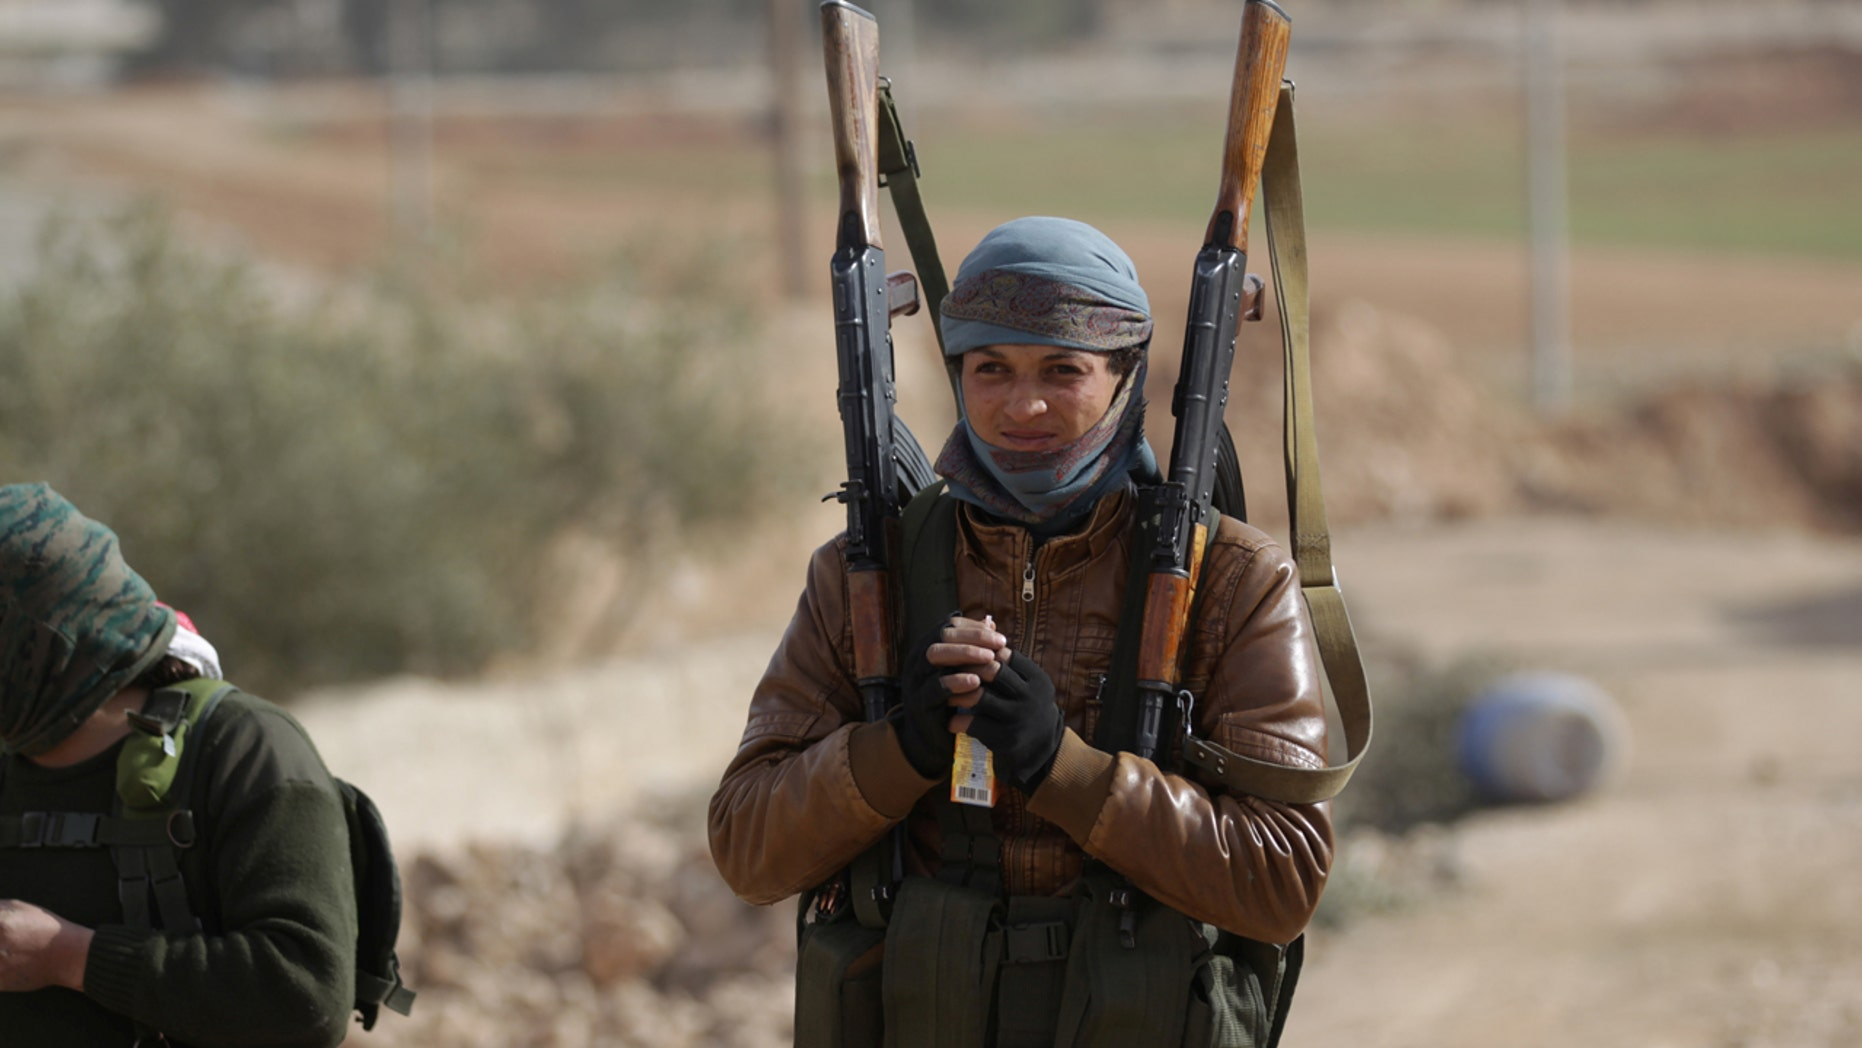 A rebel fighter carries his weapons on the outskirts of the northern Syrian town of al-Bab, Syria January 26, 2017. REUTERS/Khalil Ashawi - RTSXILL